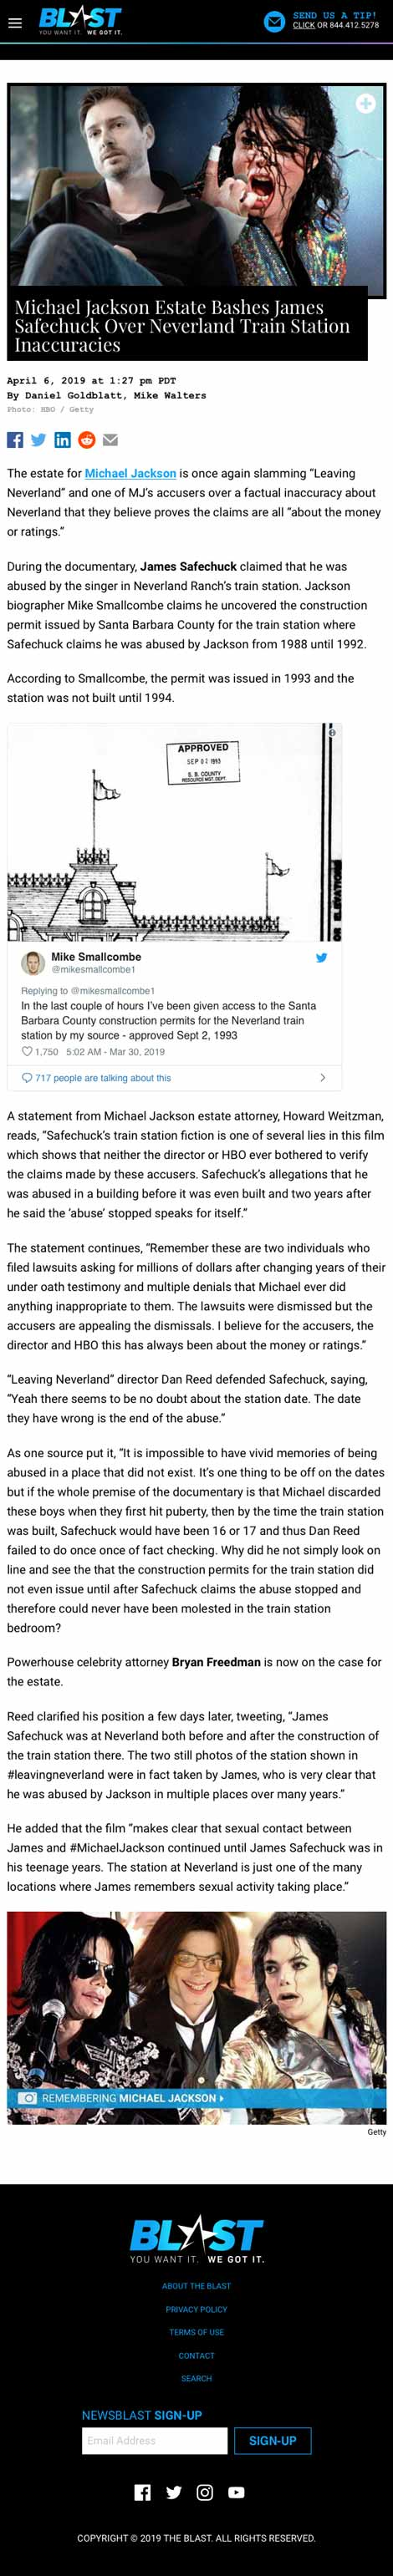 Michael Jackson Estate Bashes James Safechuck Over Neverland Train Station Inaccuracies - article by TheBlast.com